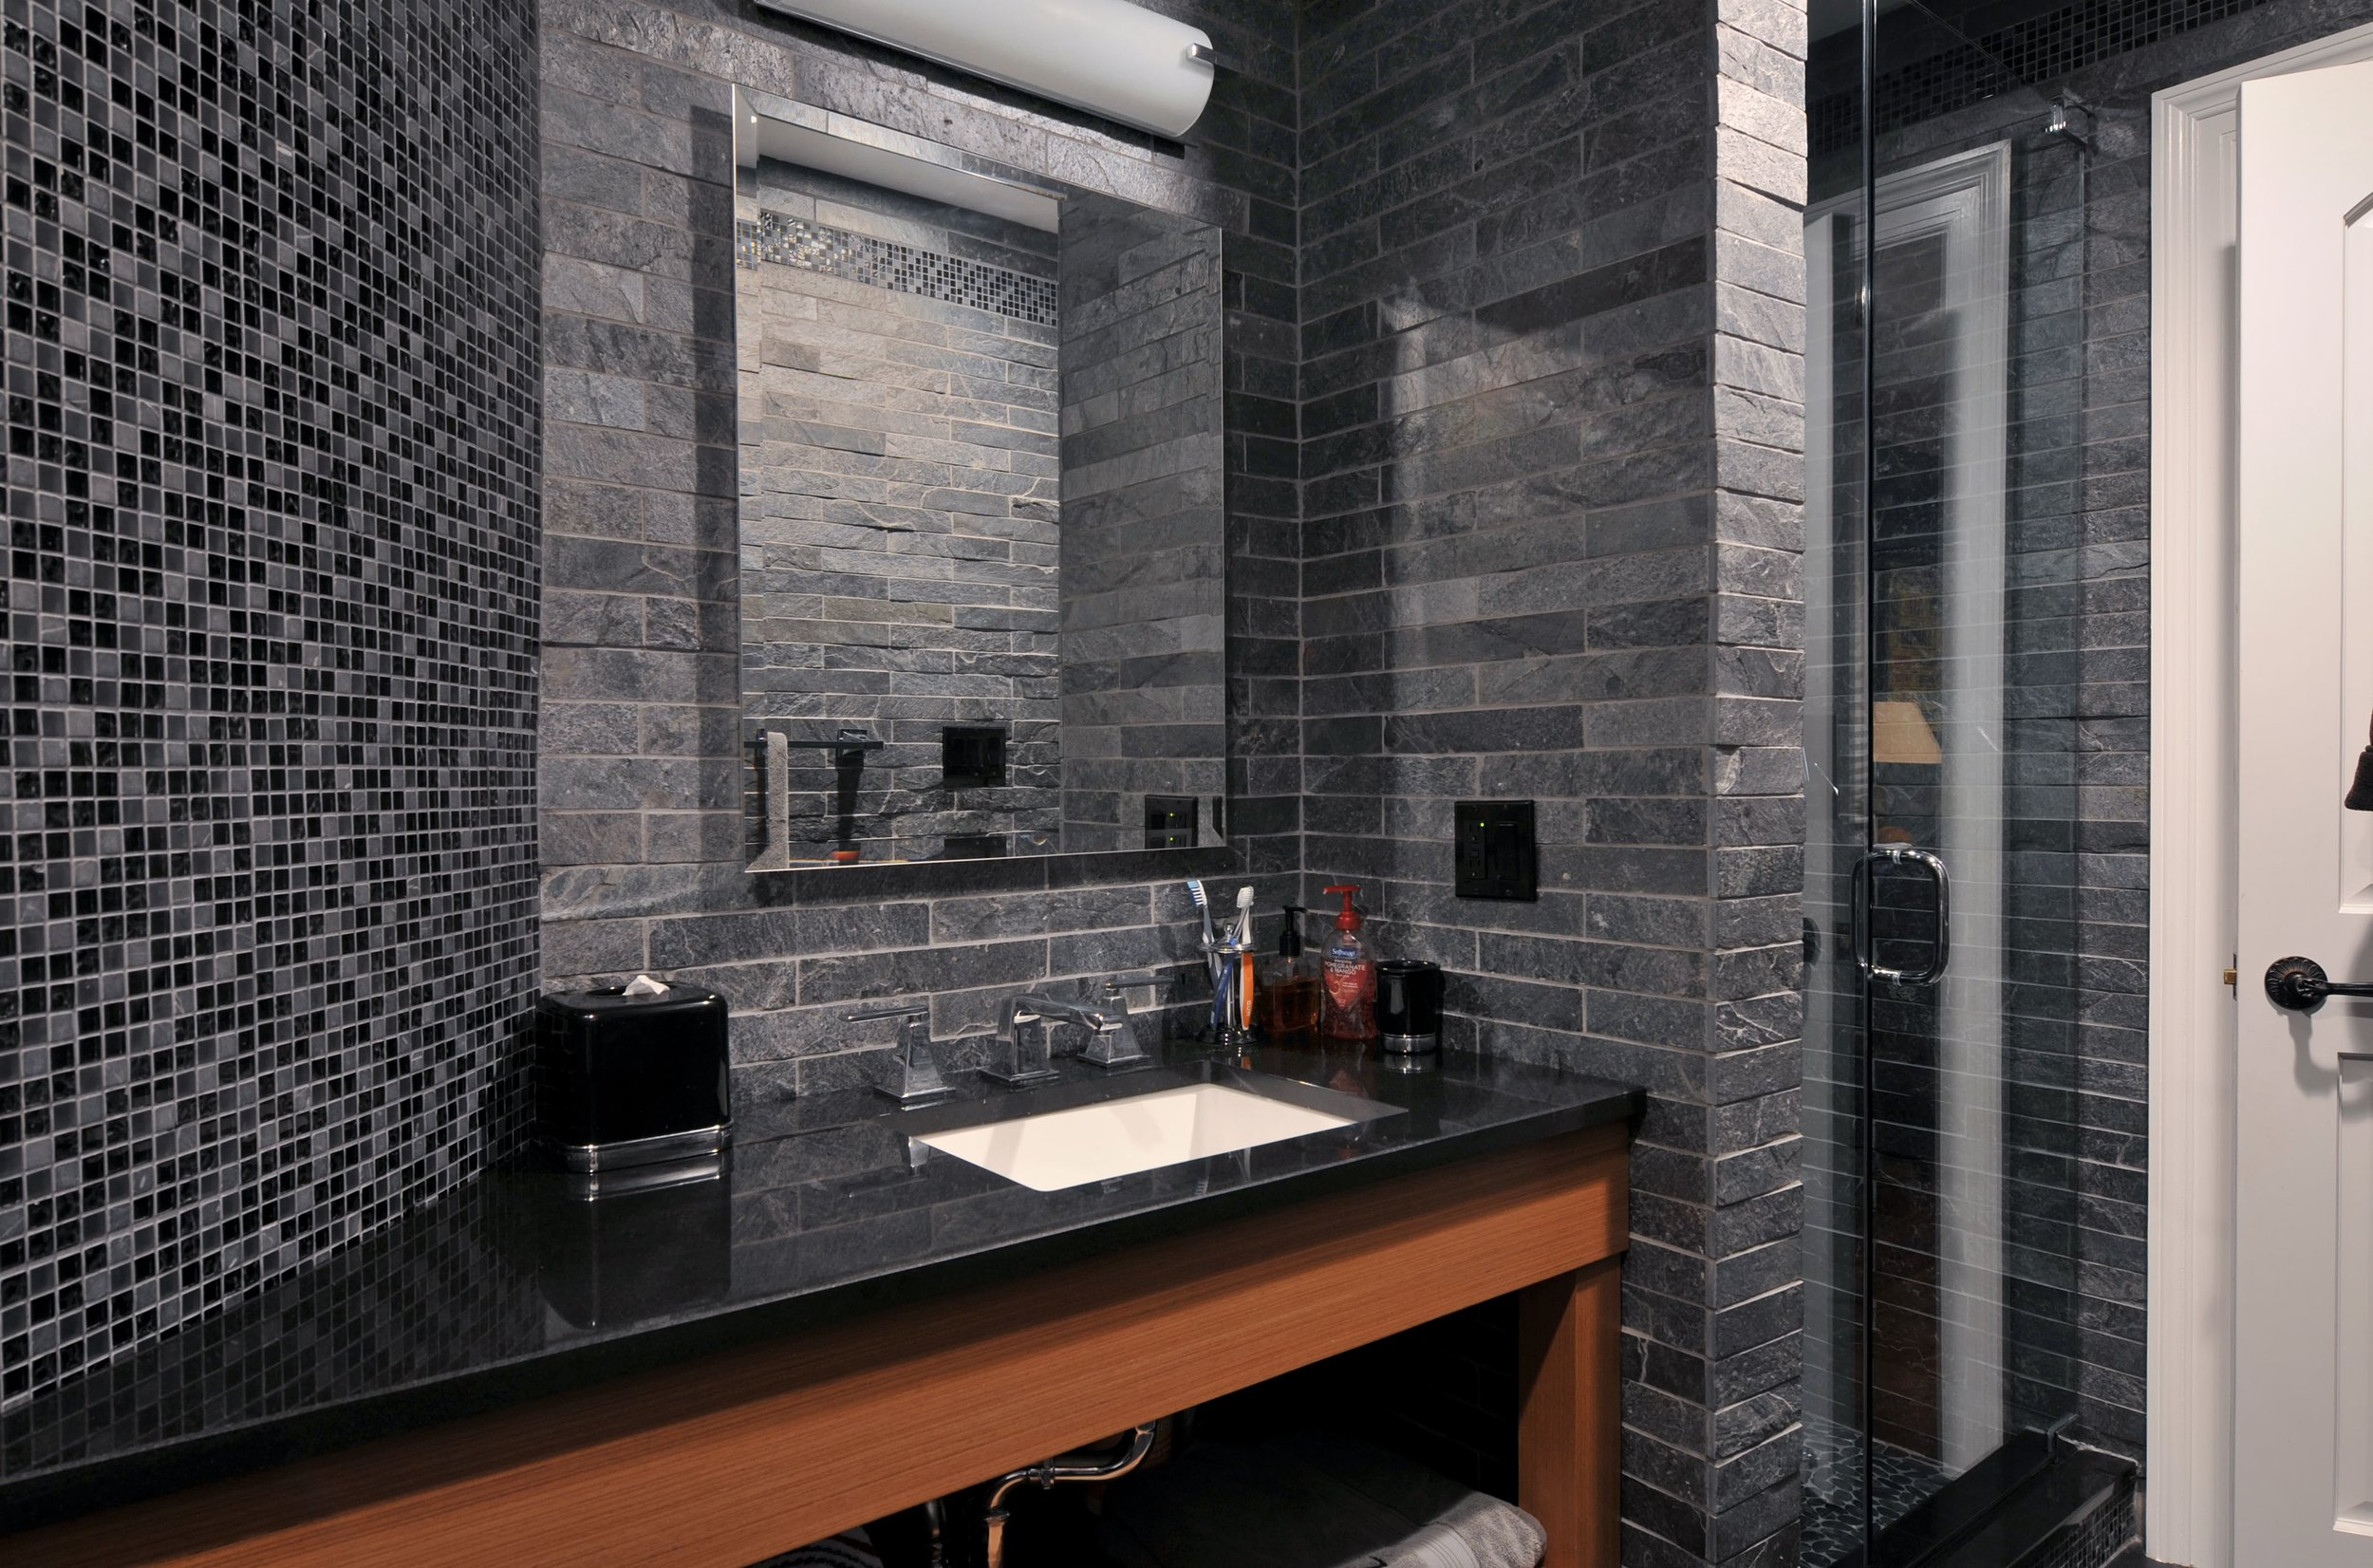 Bathroom with dark tile and black marble counter